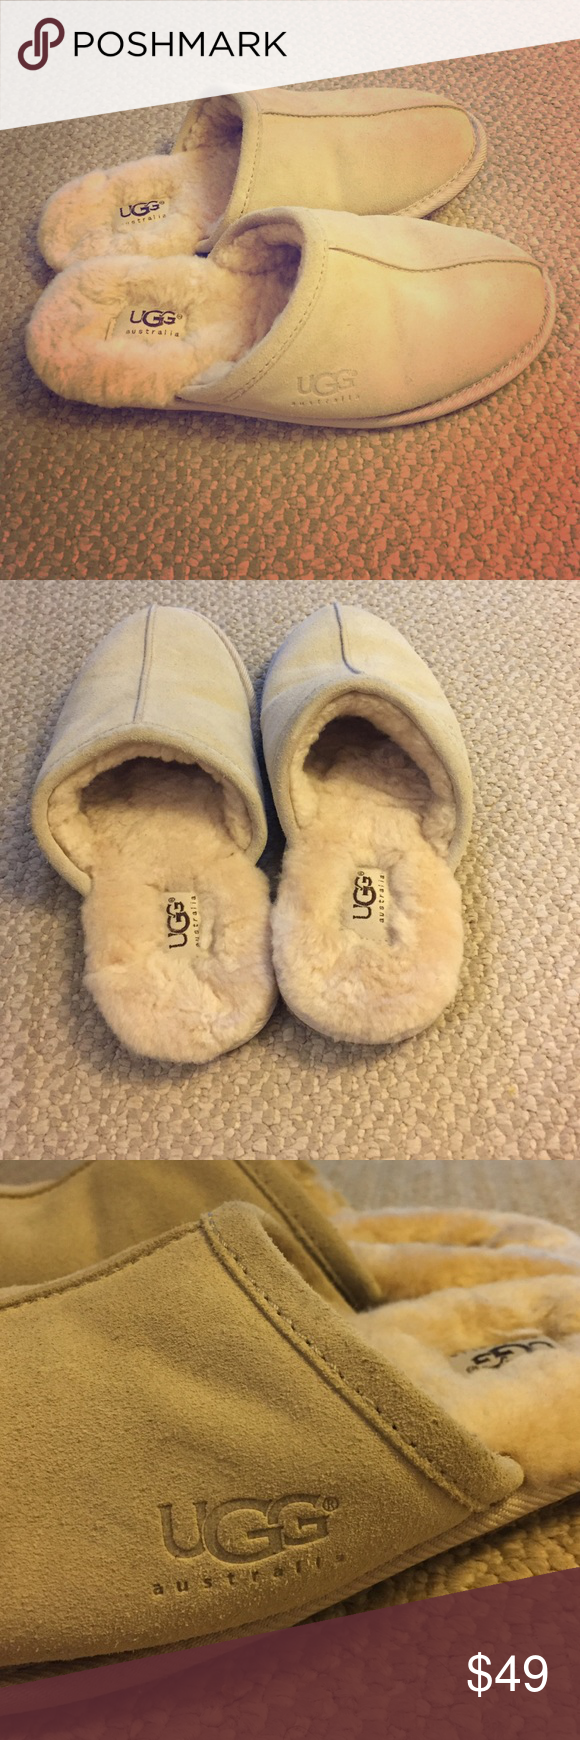 Ugg women's slip on slippers 💯% authentic Ugg women's slip on slippers. Tan soft suede/leather outside and genuine sheepskin inside/lining. Size 7, barely worn. From a pet and smoke free home UGG Shoes Slippers